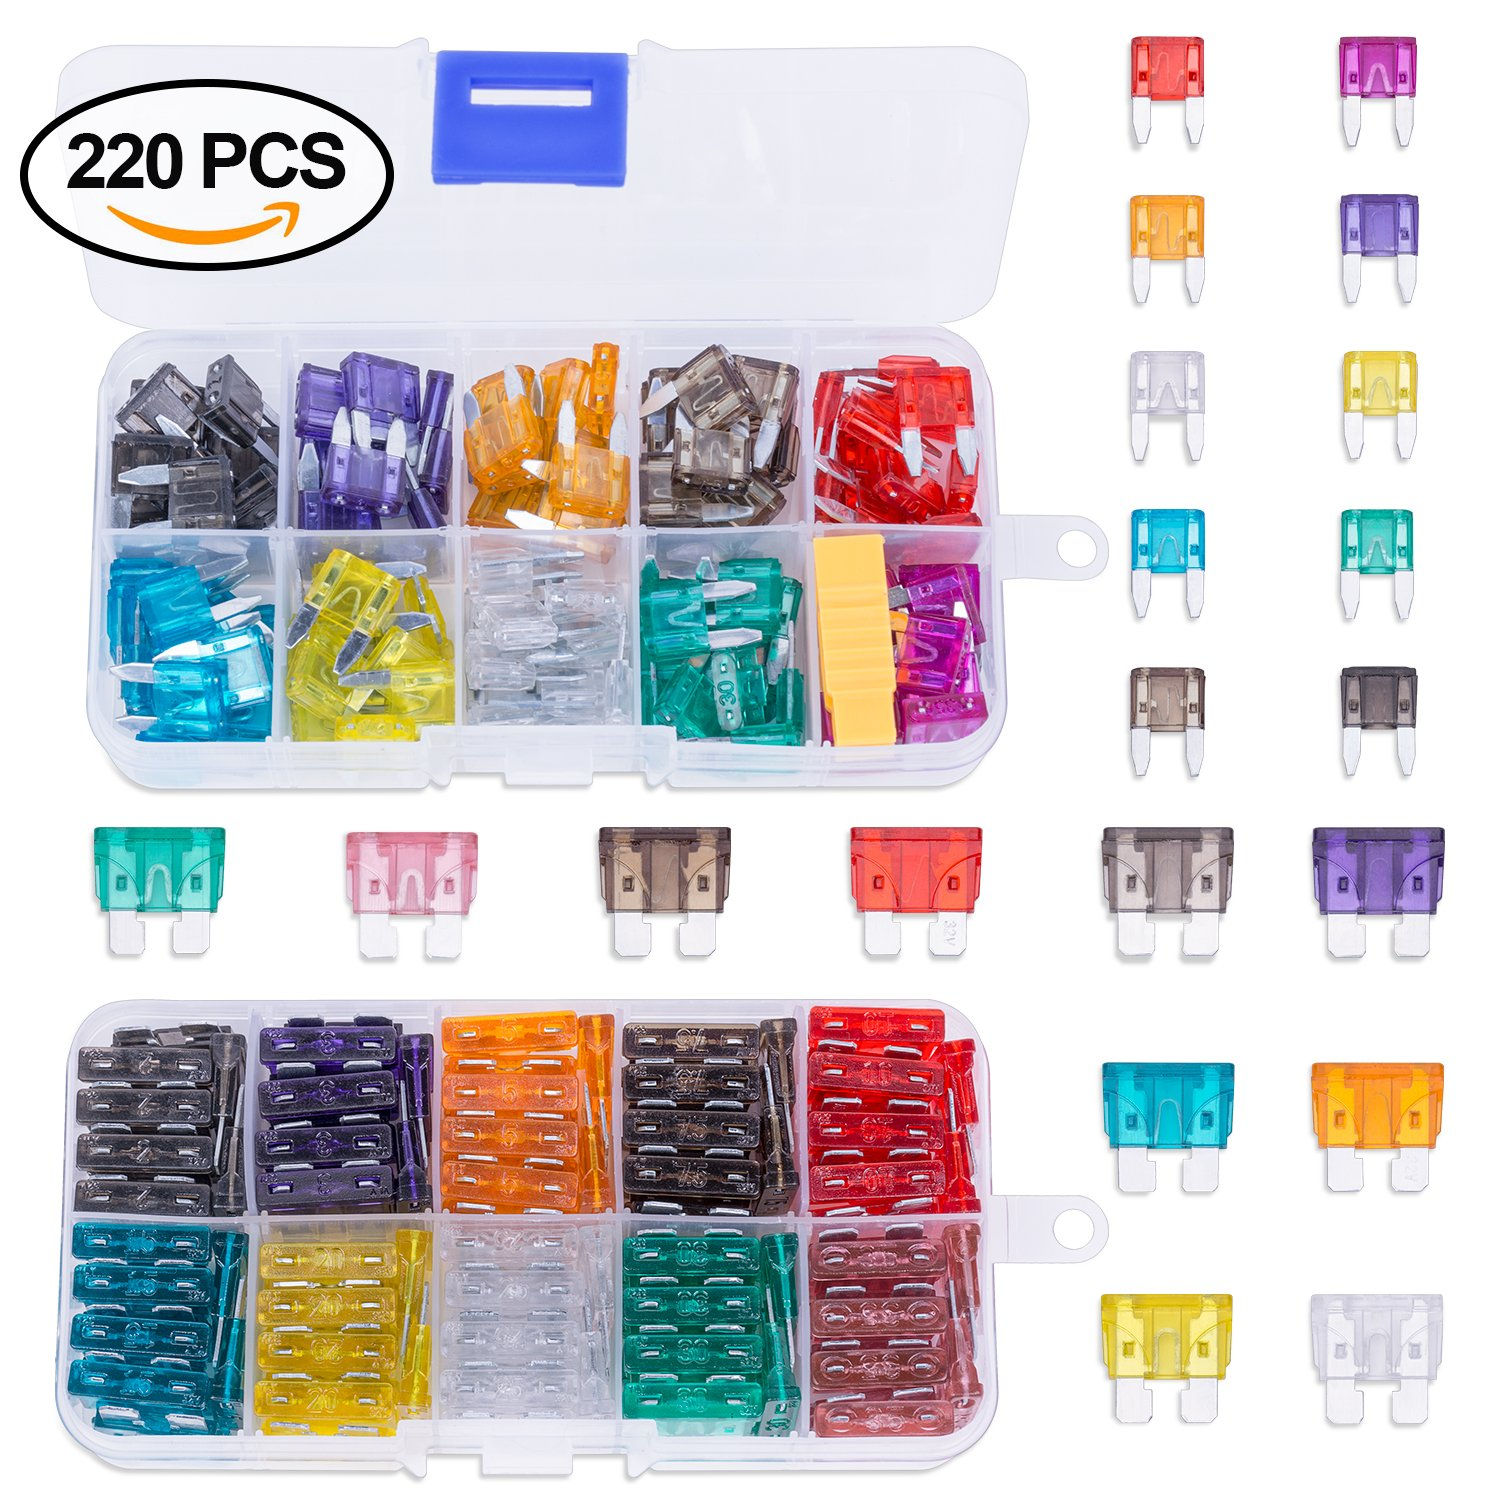 Best Rated In Automotive Replacement Fuse Assortments Helpful Double Handle Box Blade Car Fuses Assortment Kit 220pcs Standard Mini 2a 3a 5a